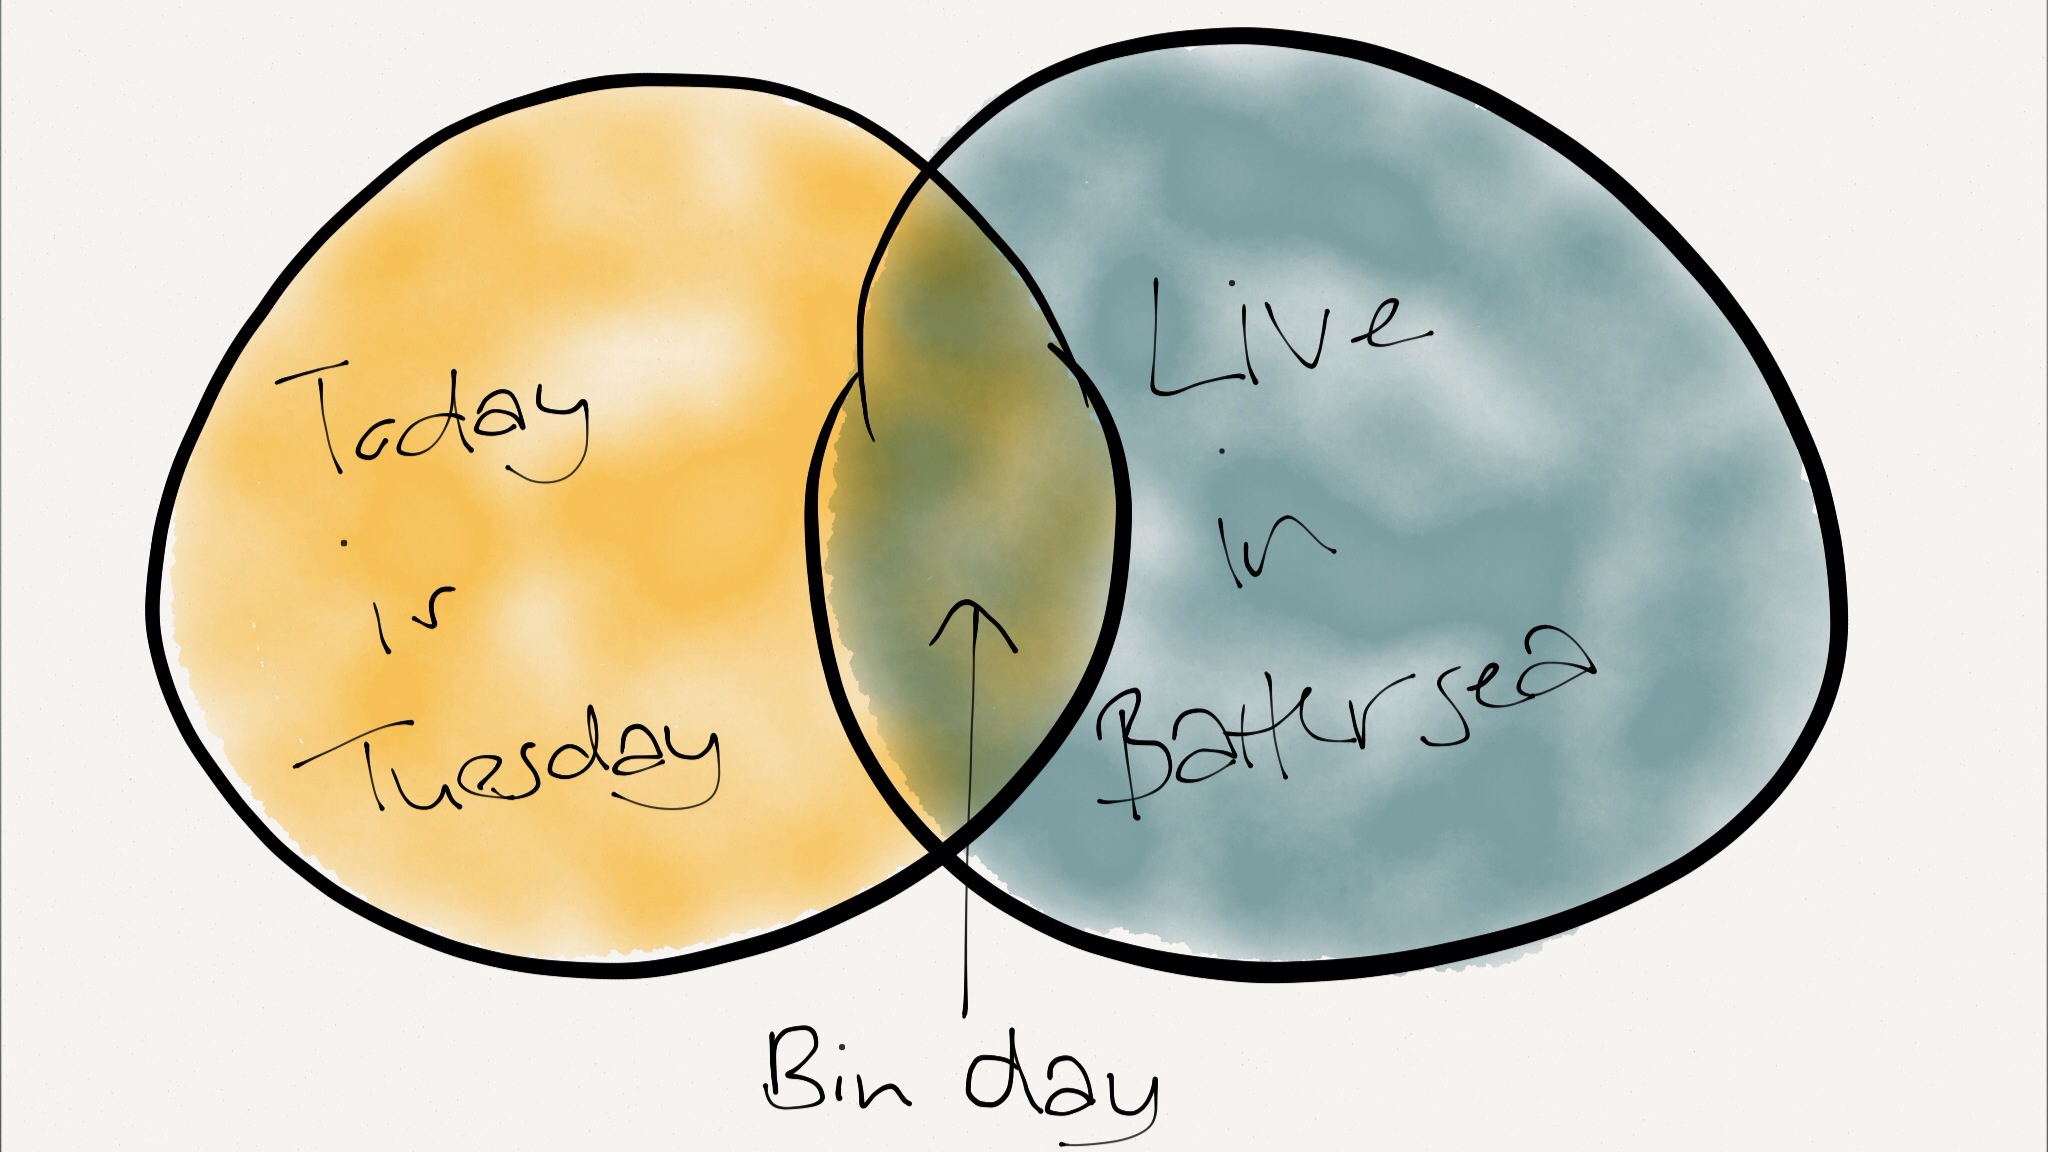 A bad Venn diagram of bin day.